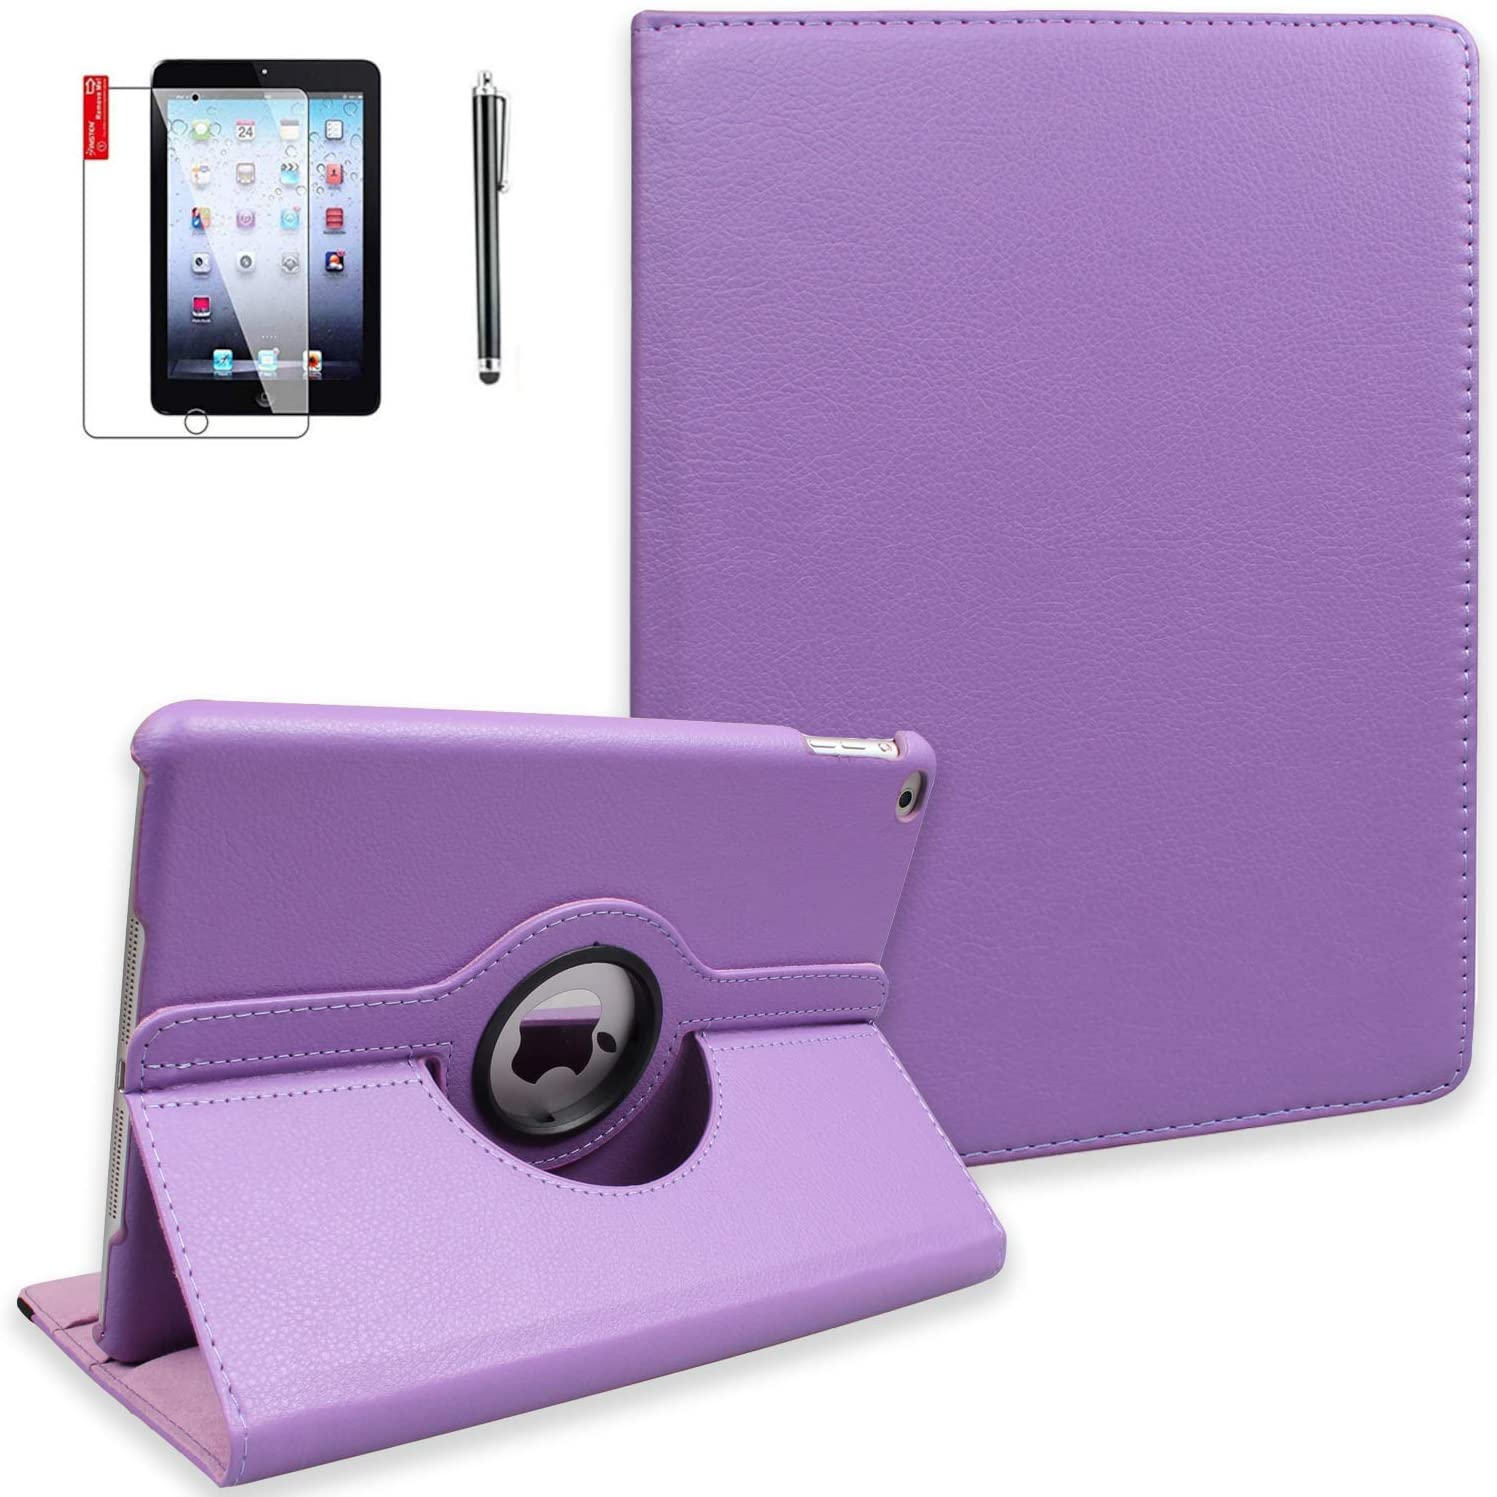 iPad 9.7 inch 2nd 3rd 4th Generation Case with Screen Protector and Stylus - Model A1395 A1416 A1458-360 Degree Rotating Stand, Auto Sleep Wake, Shockproof, Scratchproof -MD510LL/A (Light Purple)